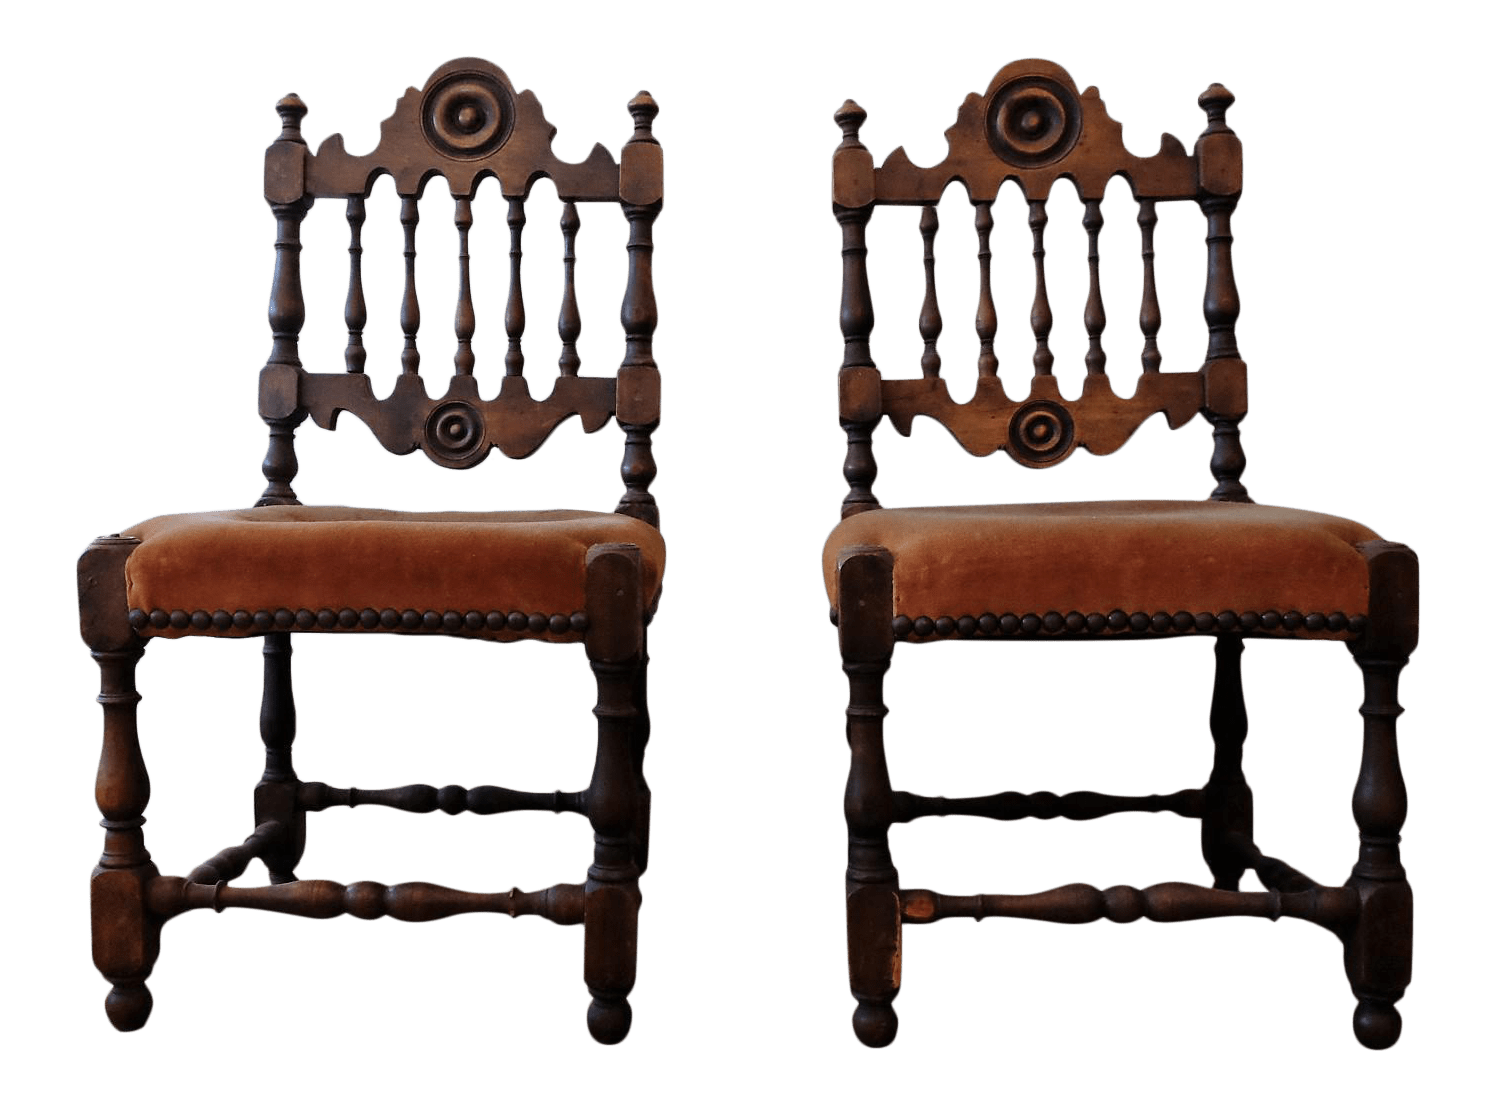 Upholstered Children's Chairs Antique Children S Chairs Upholstered In Vintage Fabric A Pair